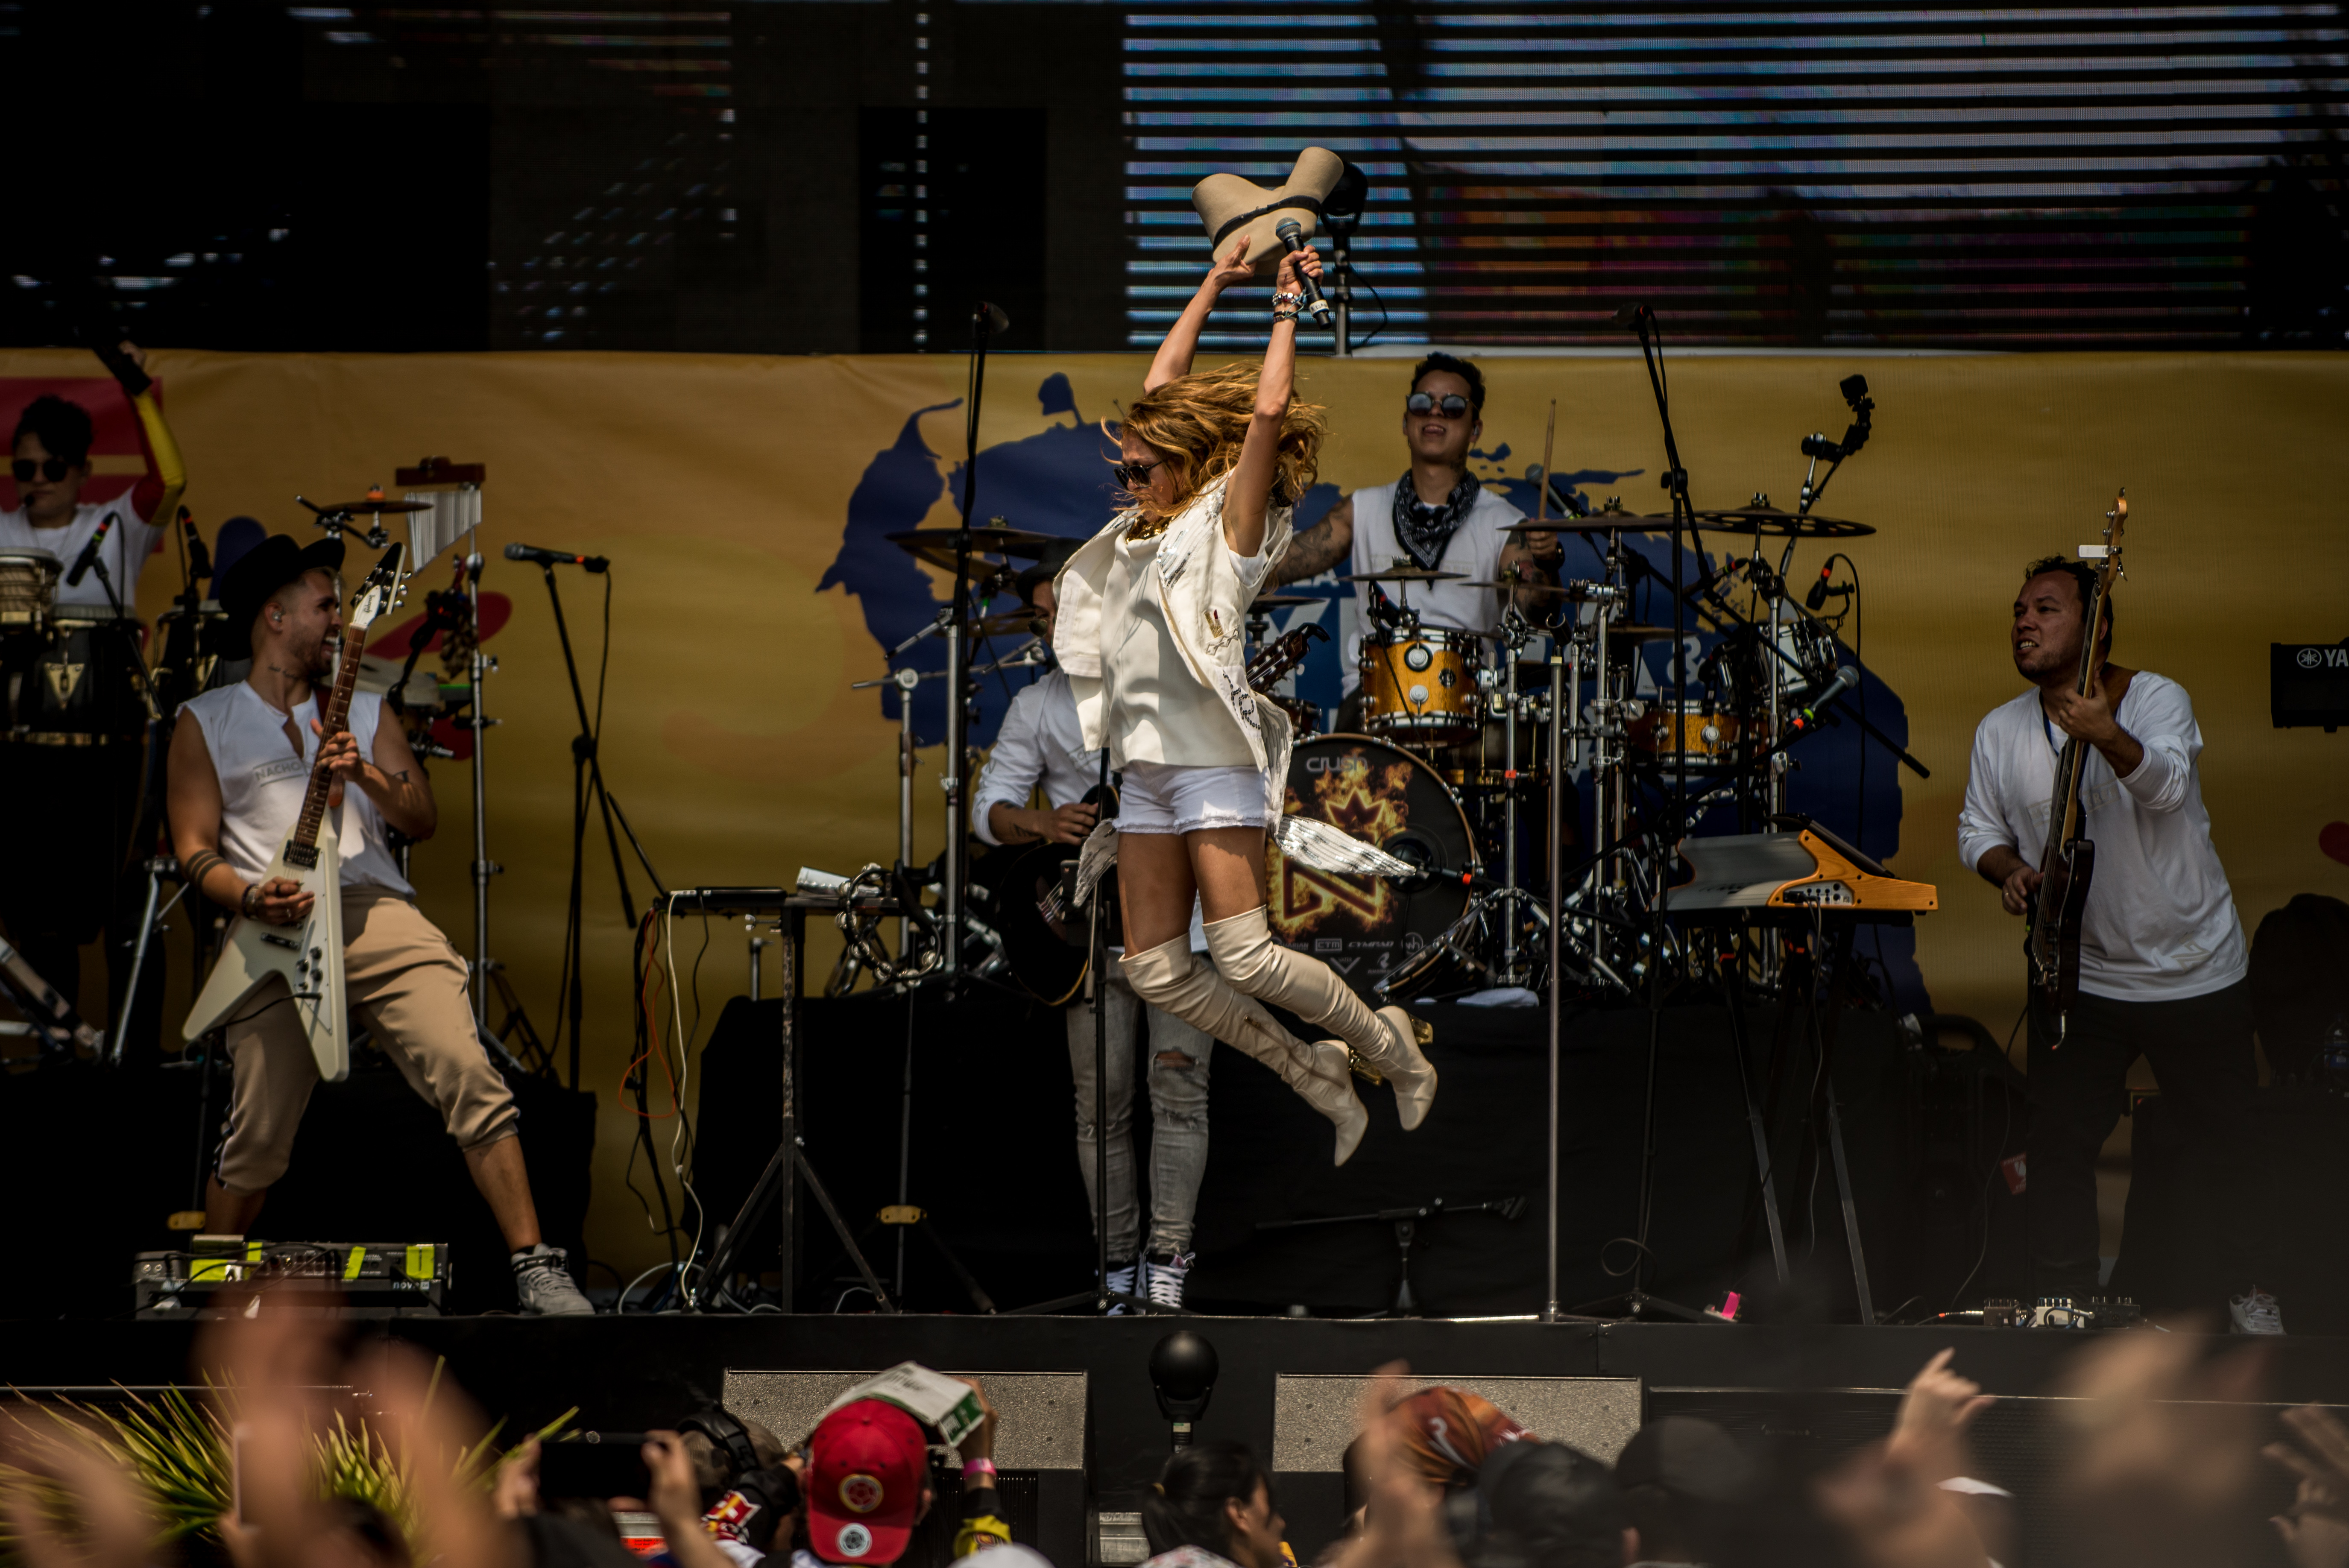 Paulina Rubio performs at the benefit concert in Cúcuta on Friday.